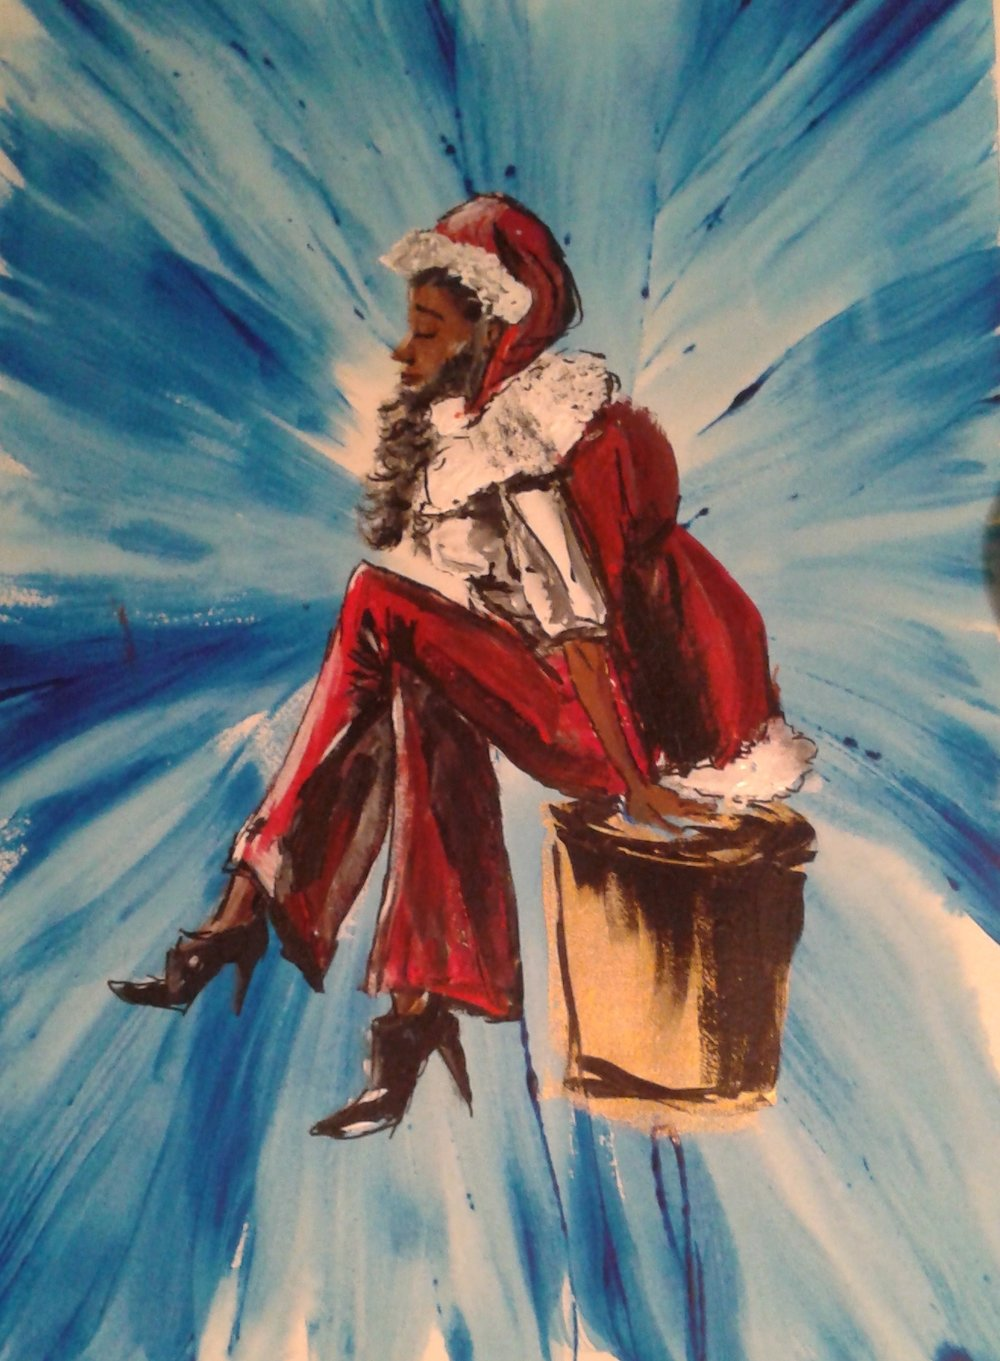 concept image for Santa Claus